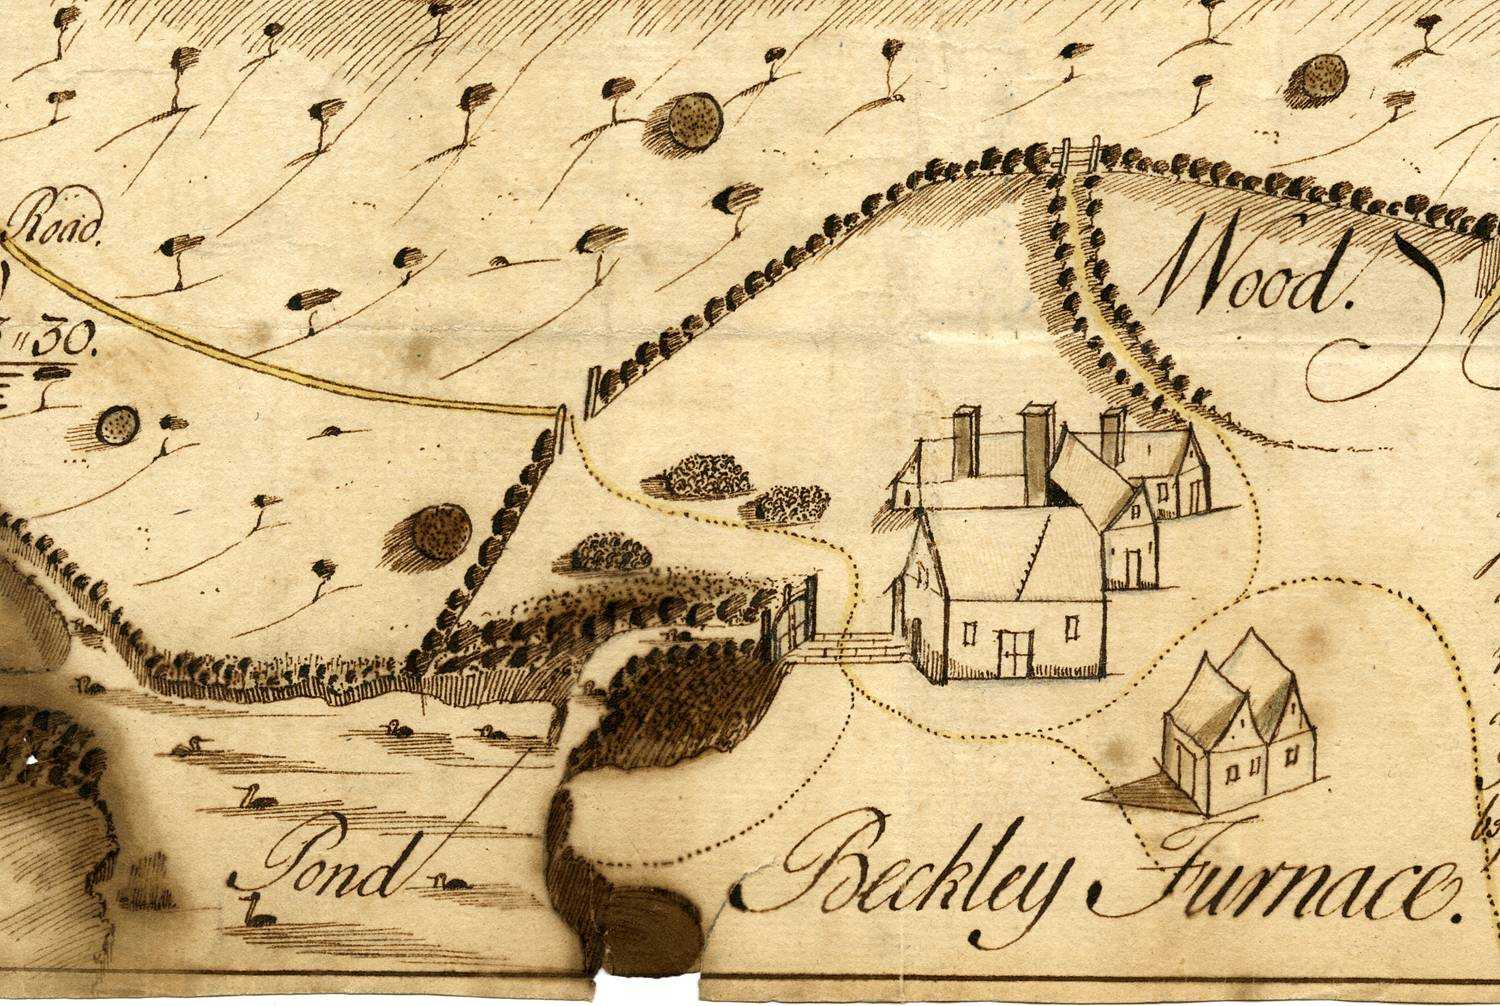 Map by Samuel Cant of a wood and land near Beckley Furnace